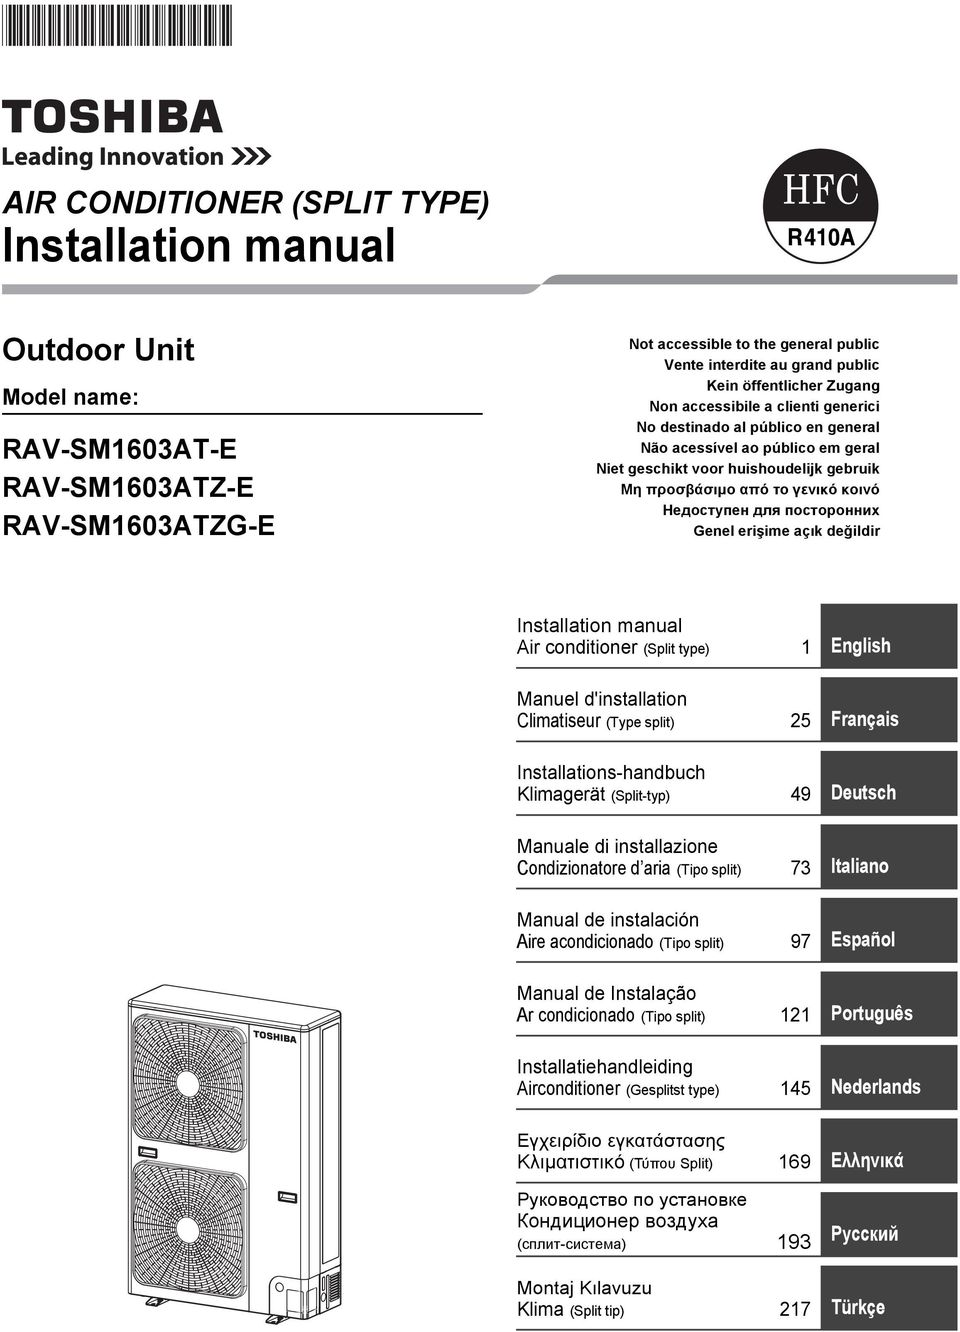 Недоступен для посторонних Genel erişime açık değildir Installation manual Air conditioner (Split type) 1 English Manuel d'installation Climatiseur (Type split) 25 Français Installations-handbuch